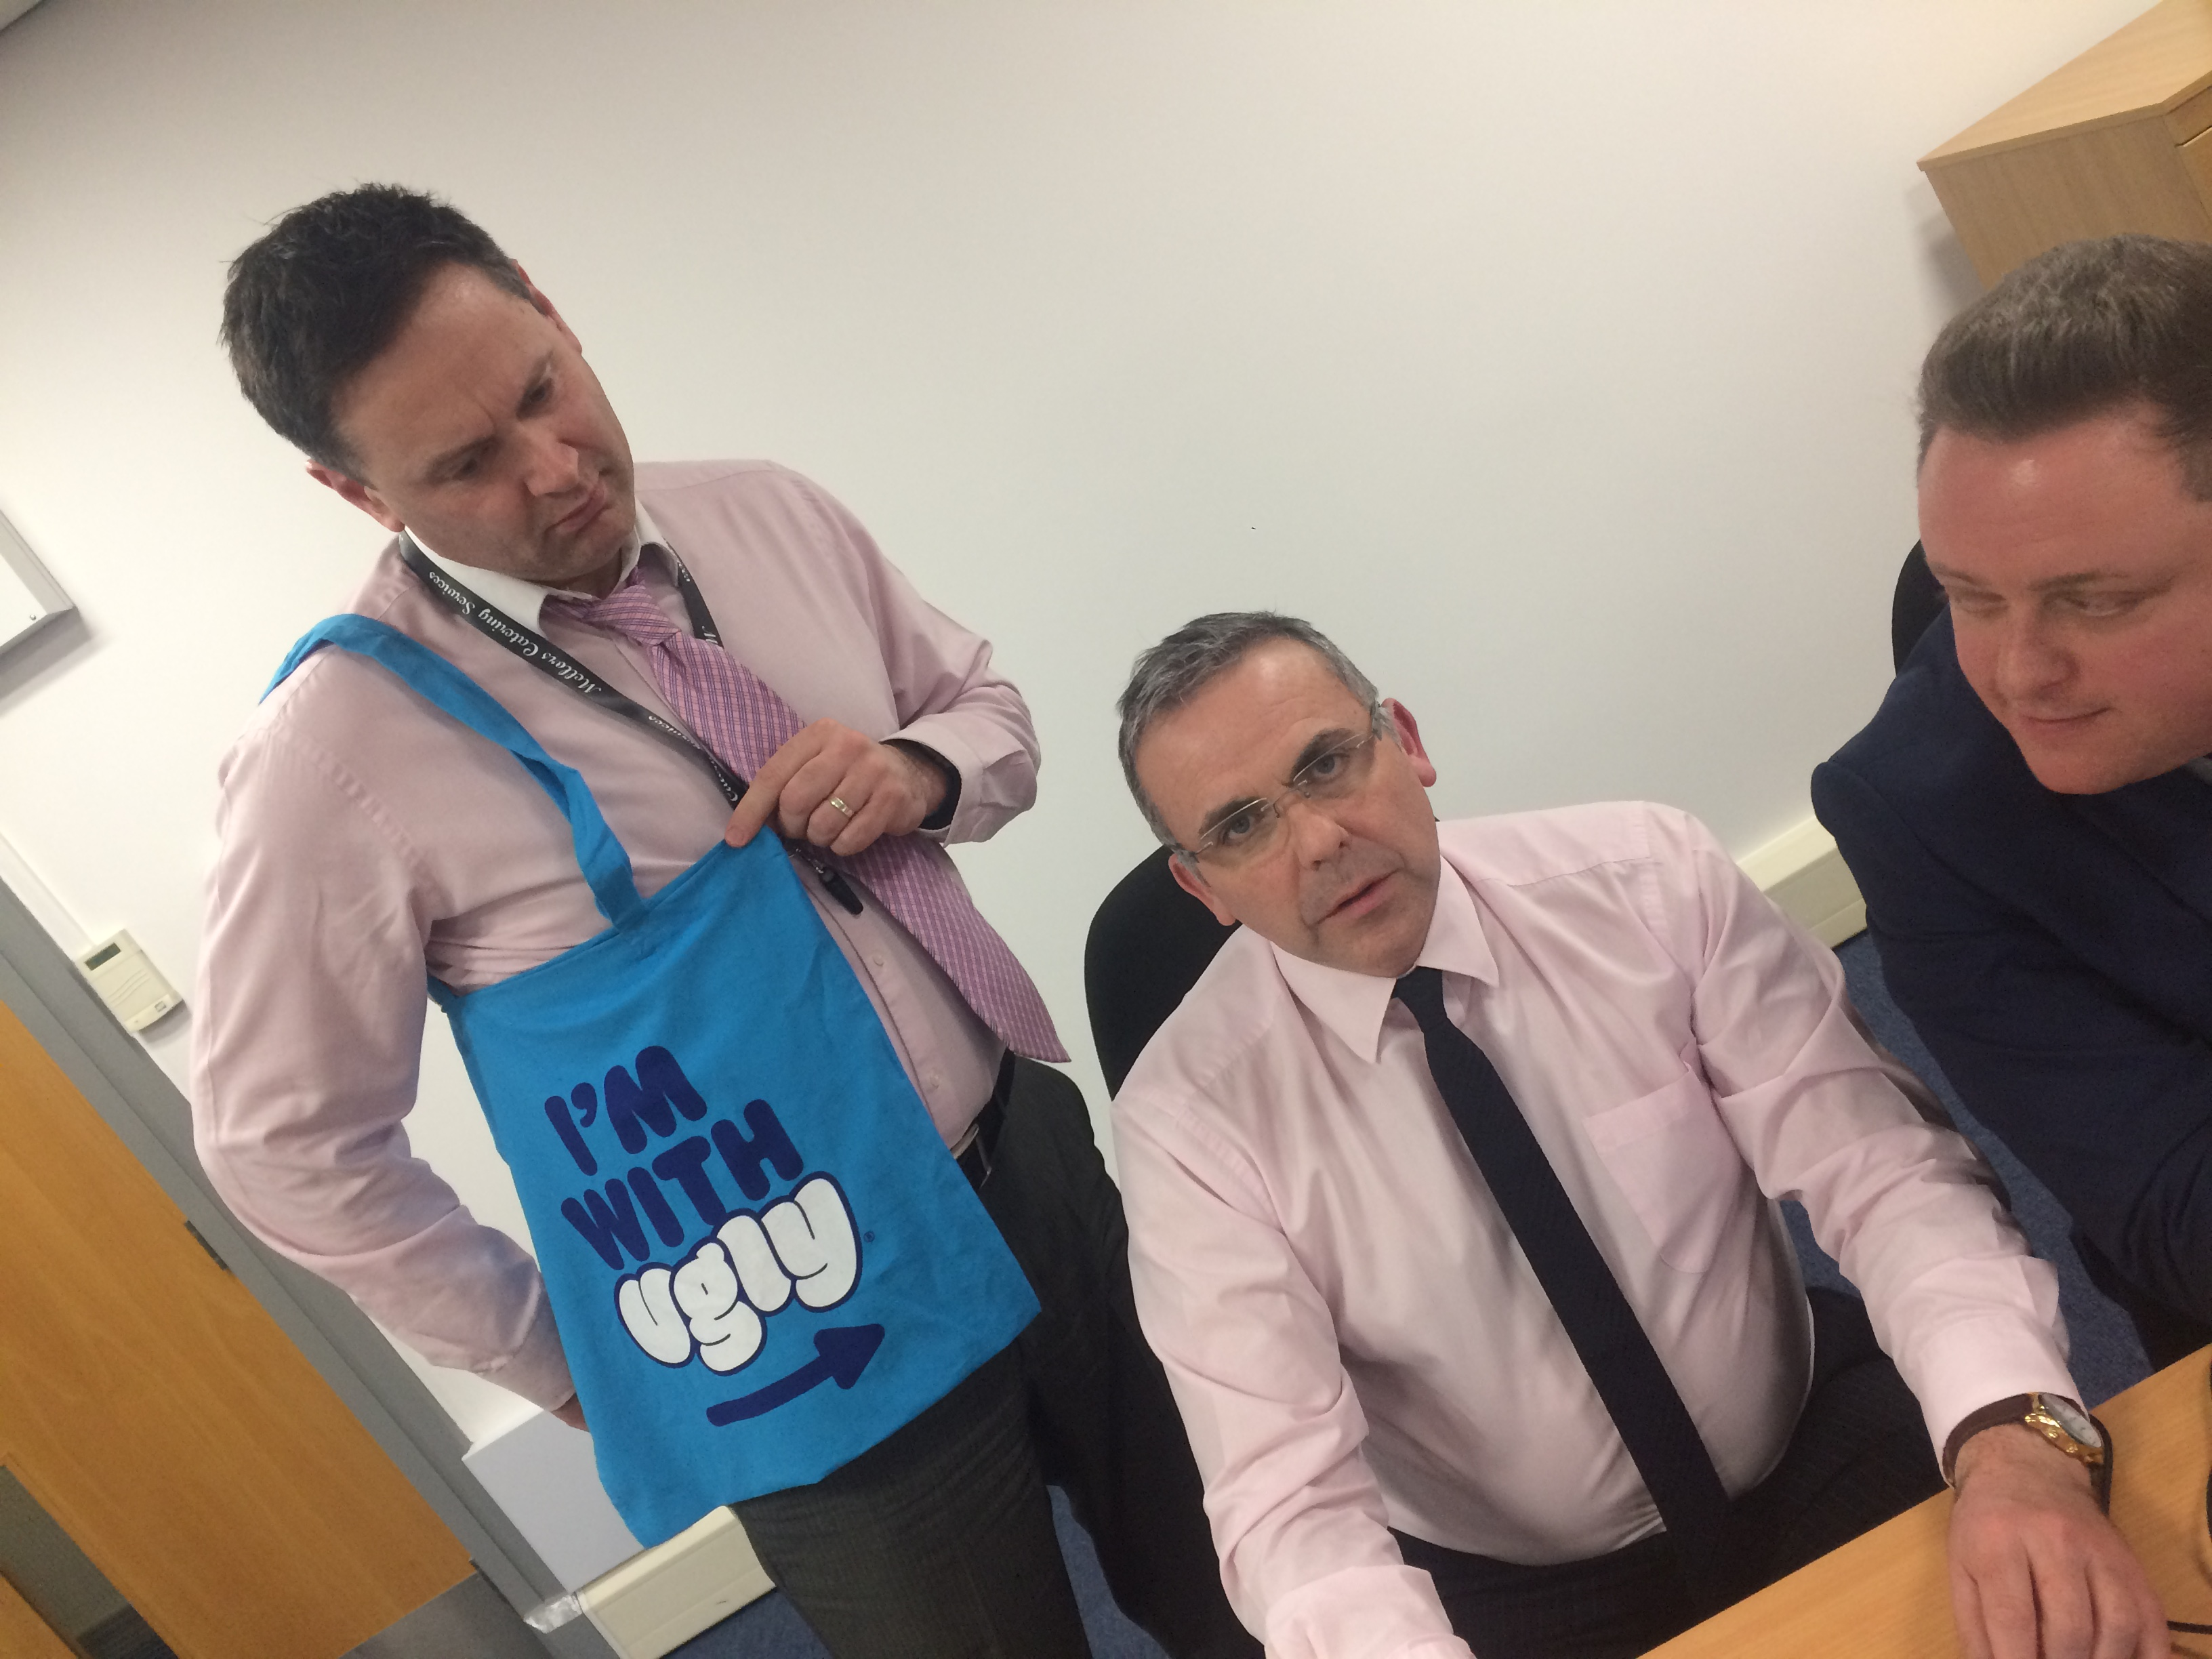 Tony Trainor, Mark Lyons and Scott Hickman pondering over some head office innovations